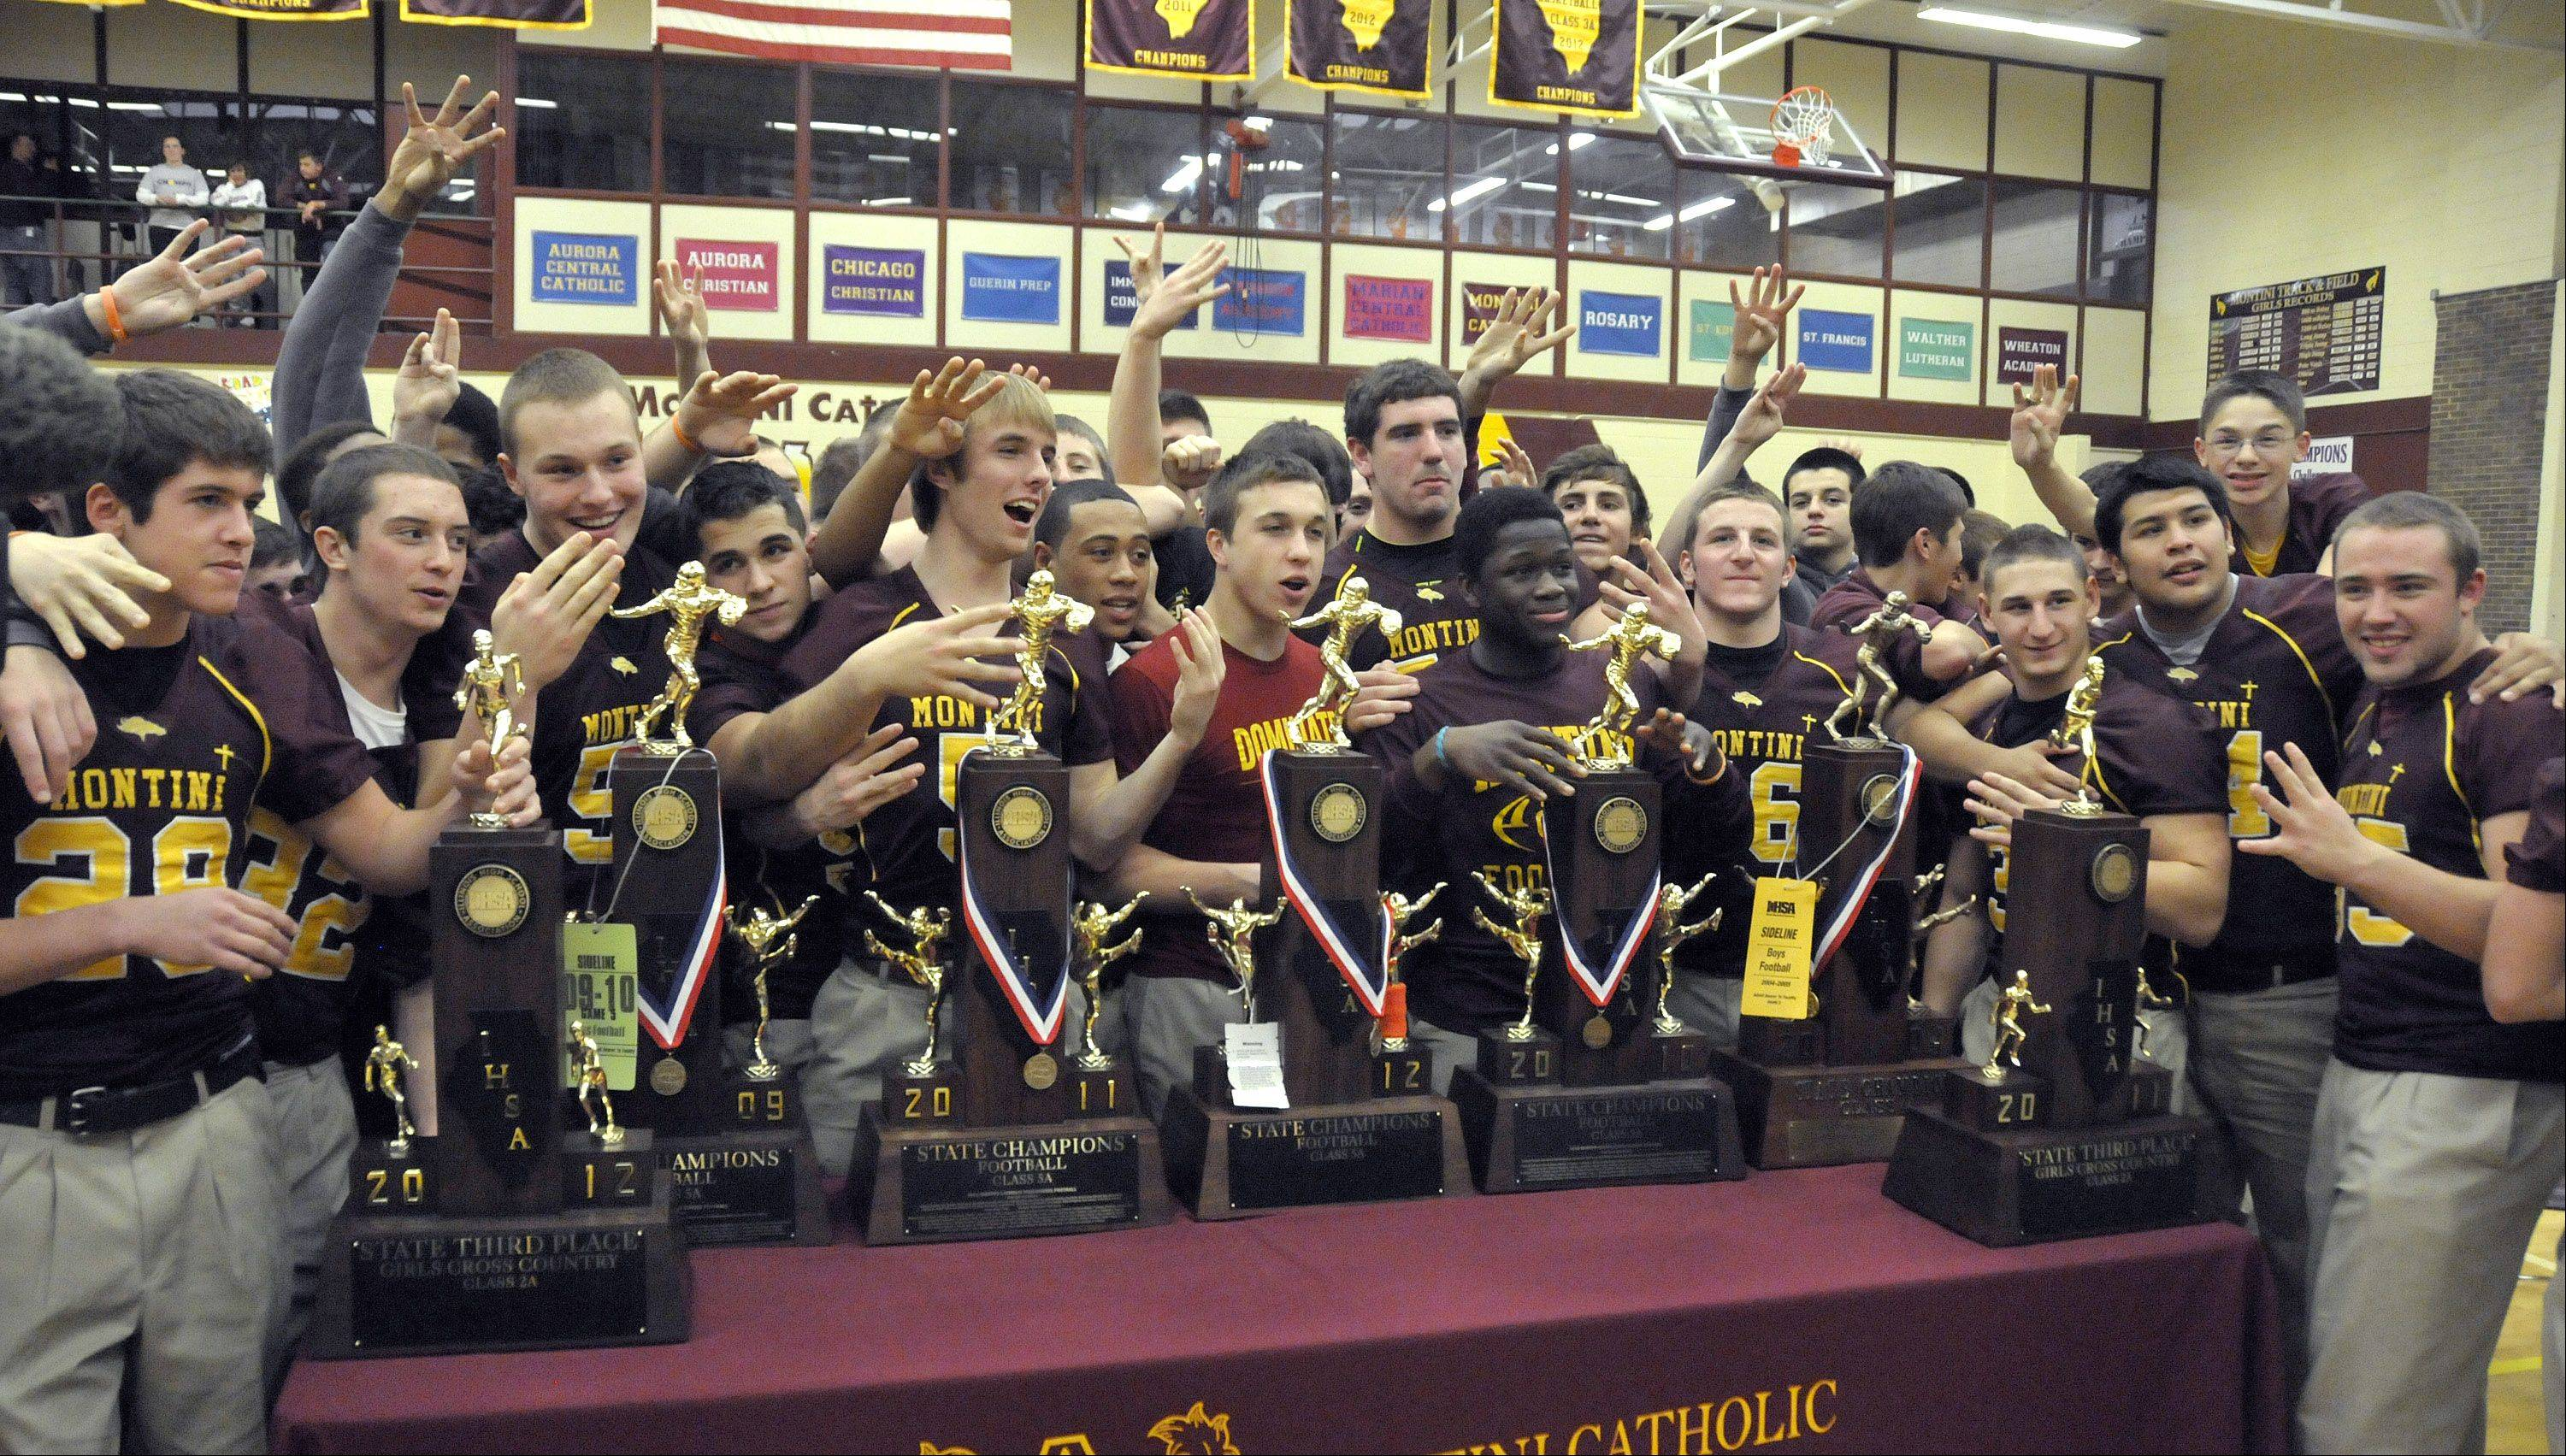 Montini will try to win a fifth consecutive state championship this season.